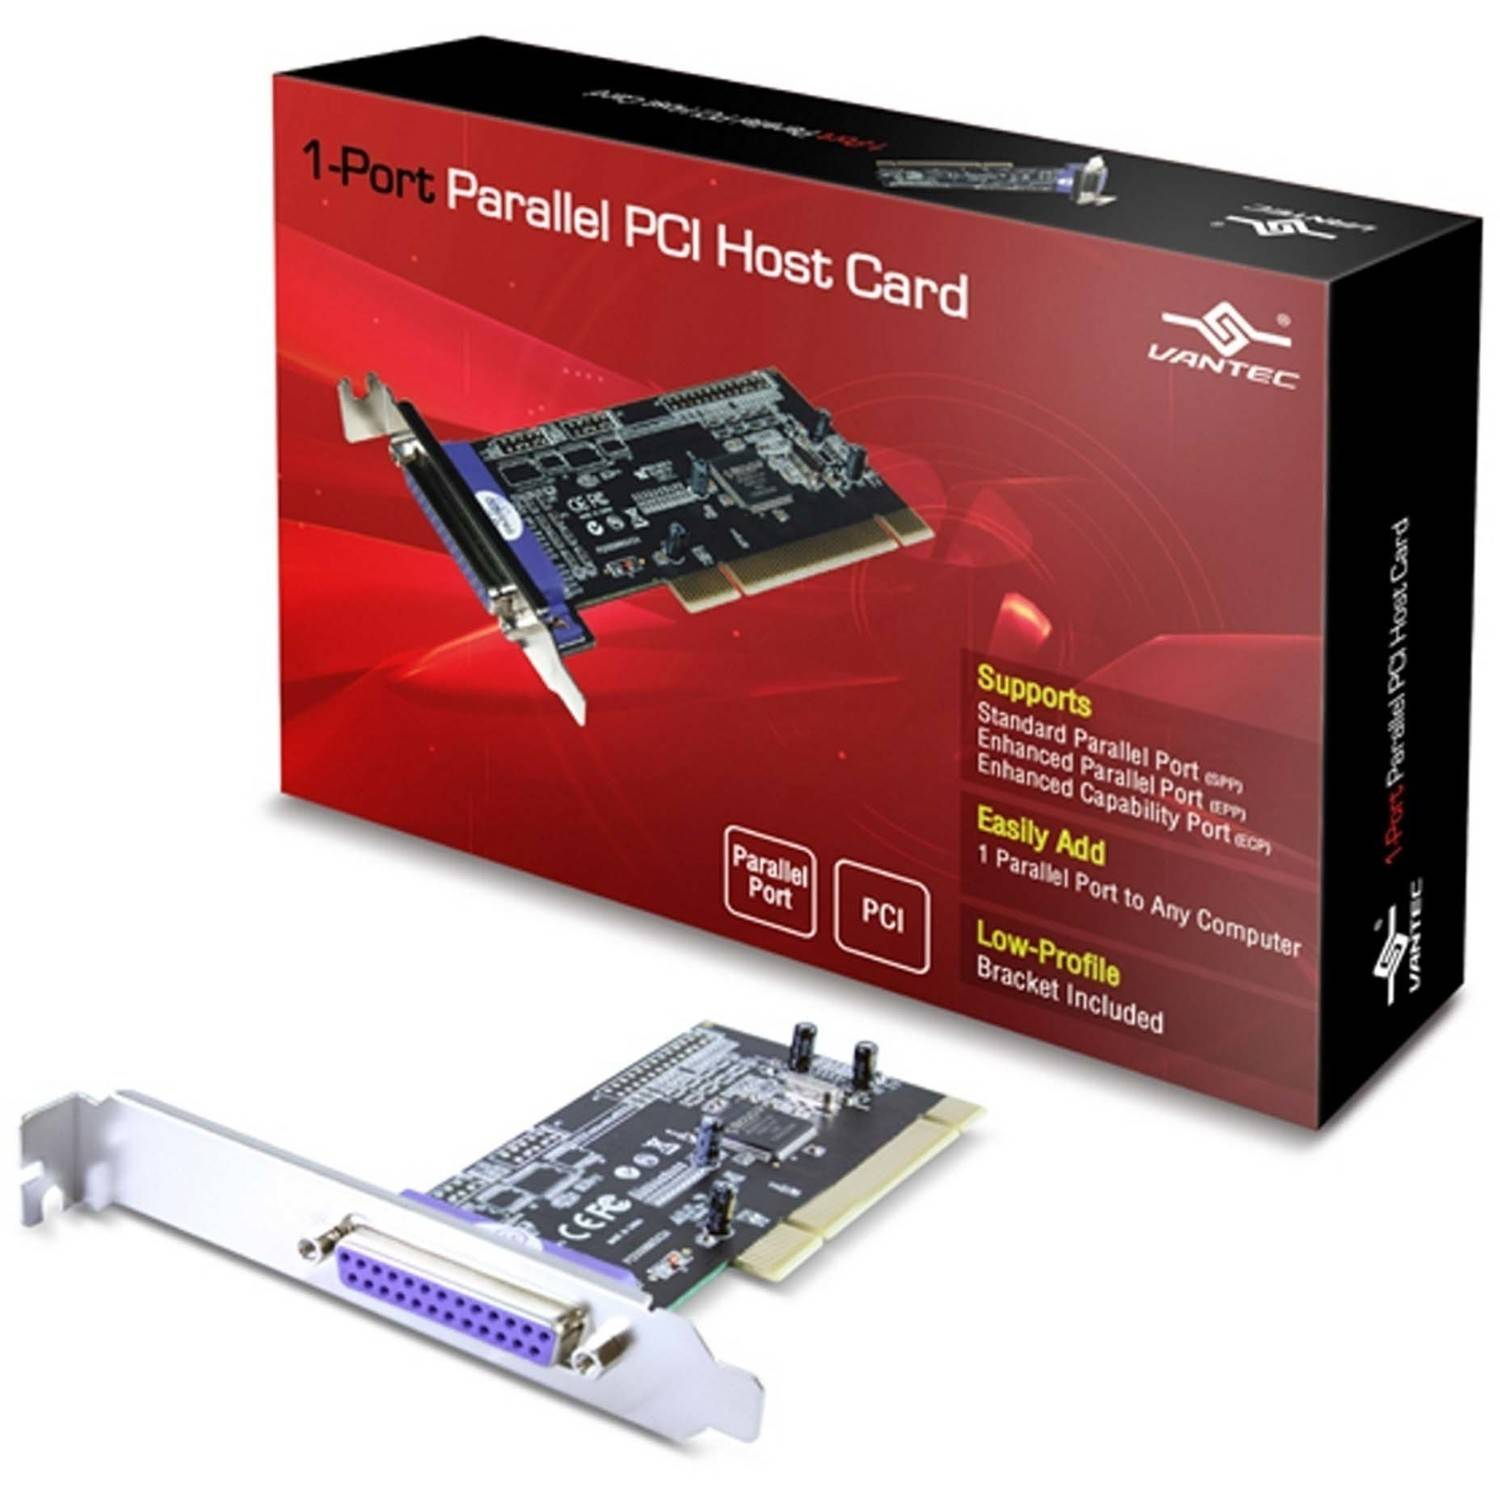 Vantec UGT-PC10PL 1-Port Parallel PCI Host Card, Silver